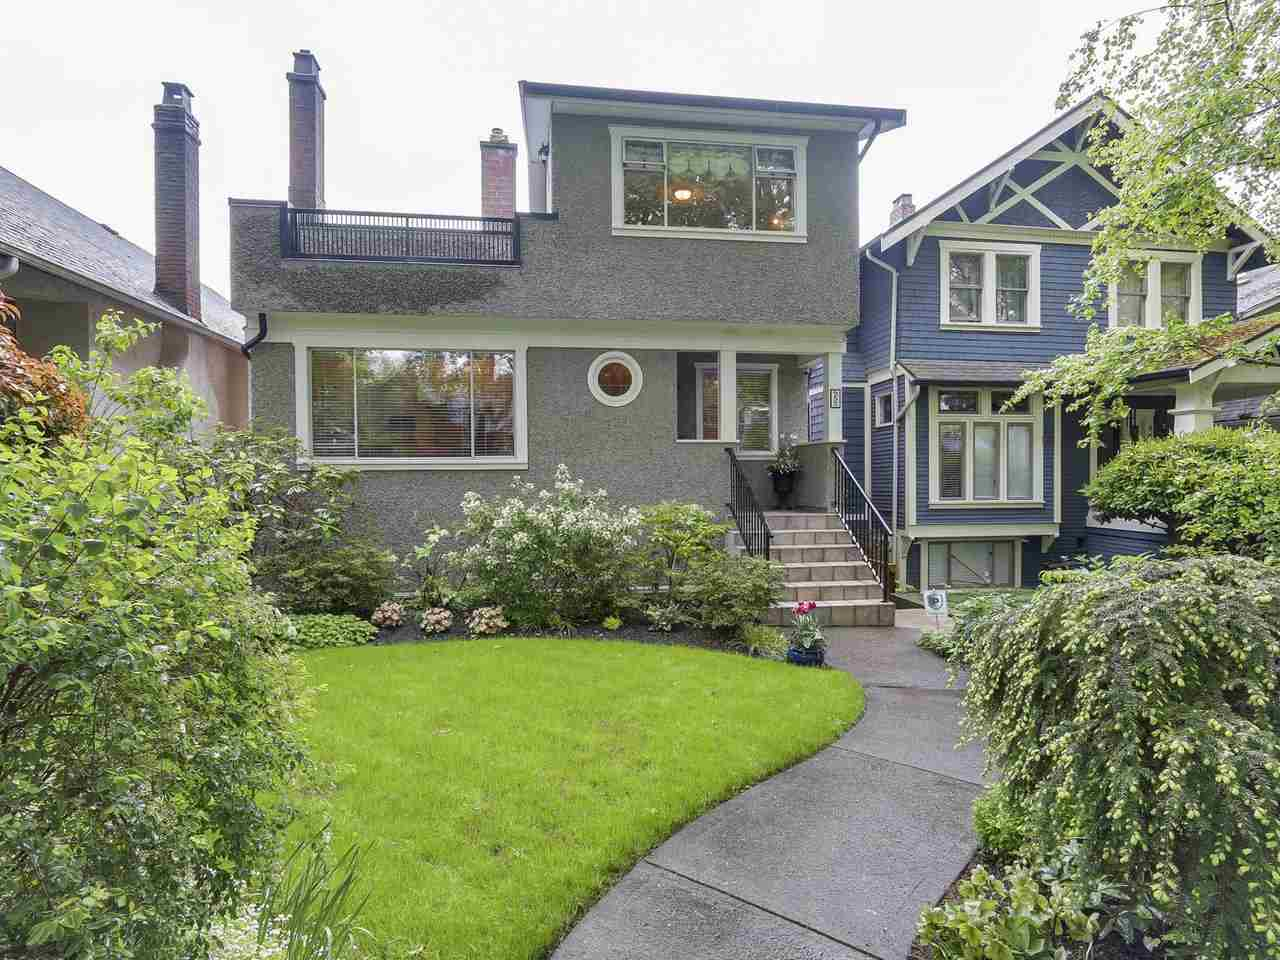 955 W 22ND AVENUE, Vancouver, BC, V5Z 2A2 Primary Photo